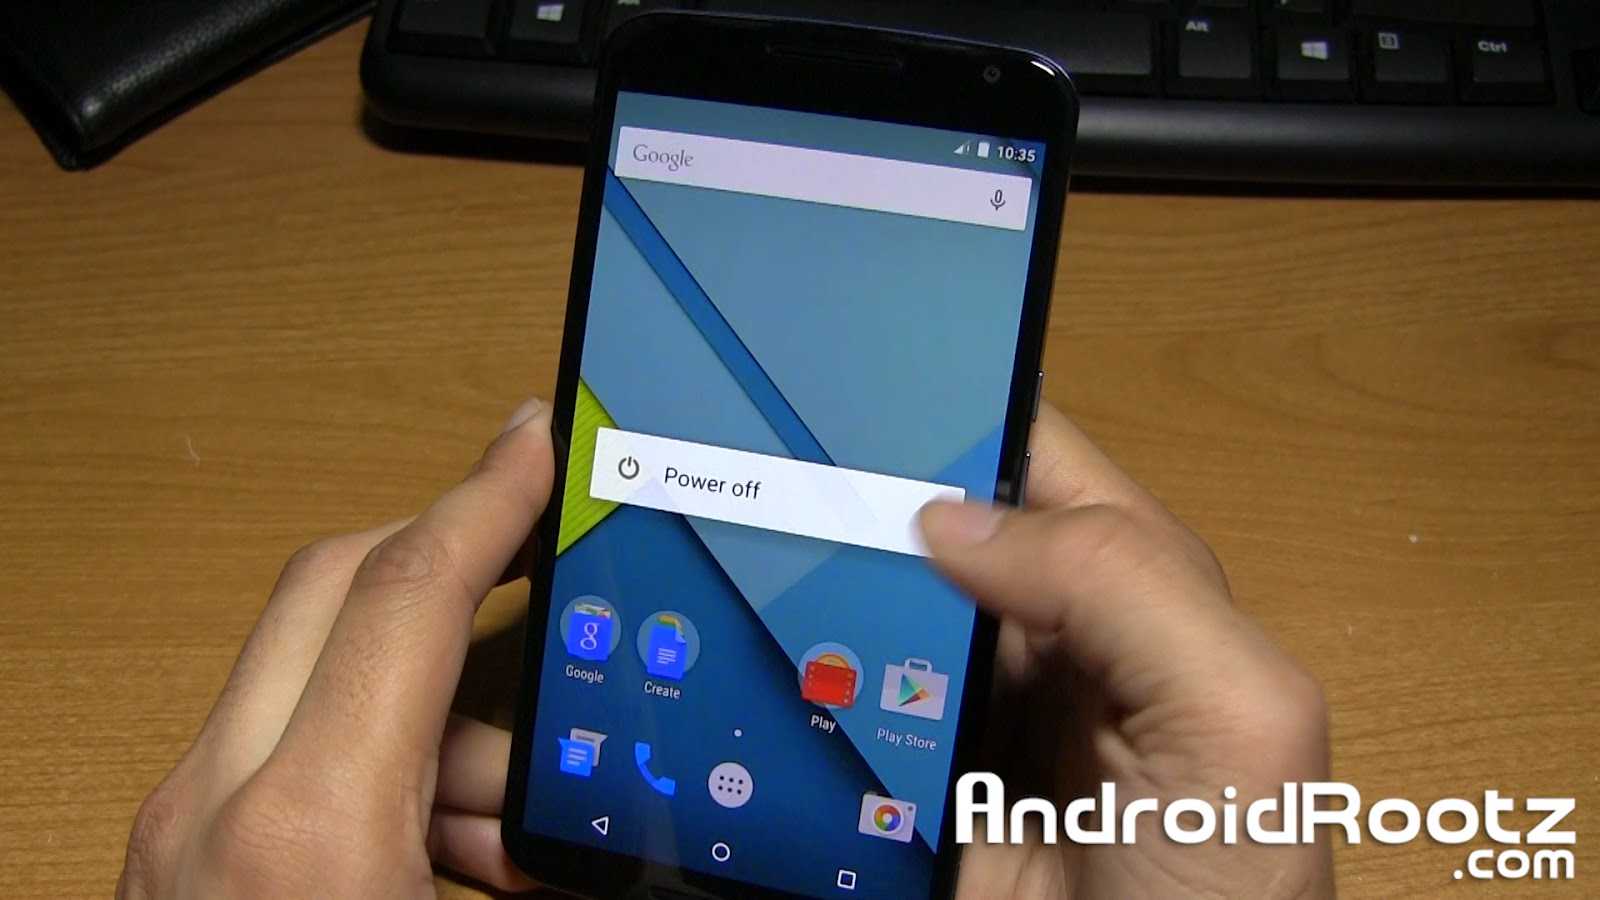 How to Fix Dead Android in Recovery Mode on Nexus 6